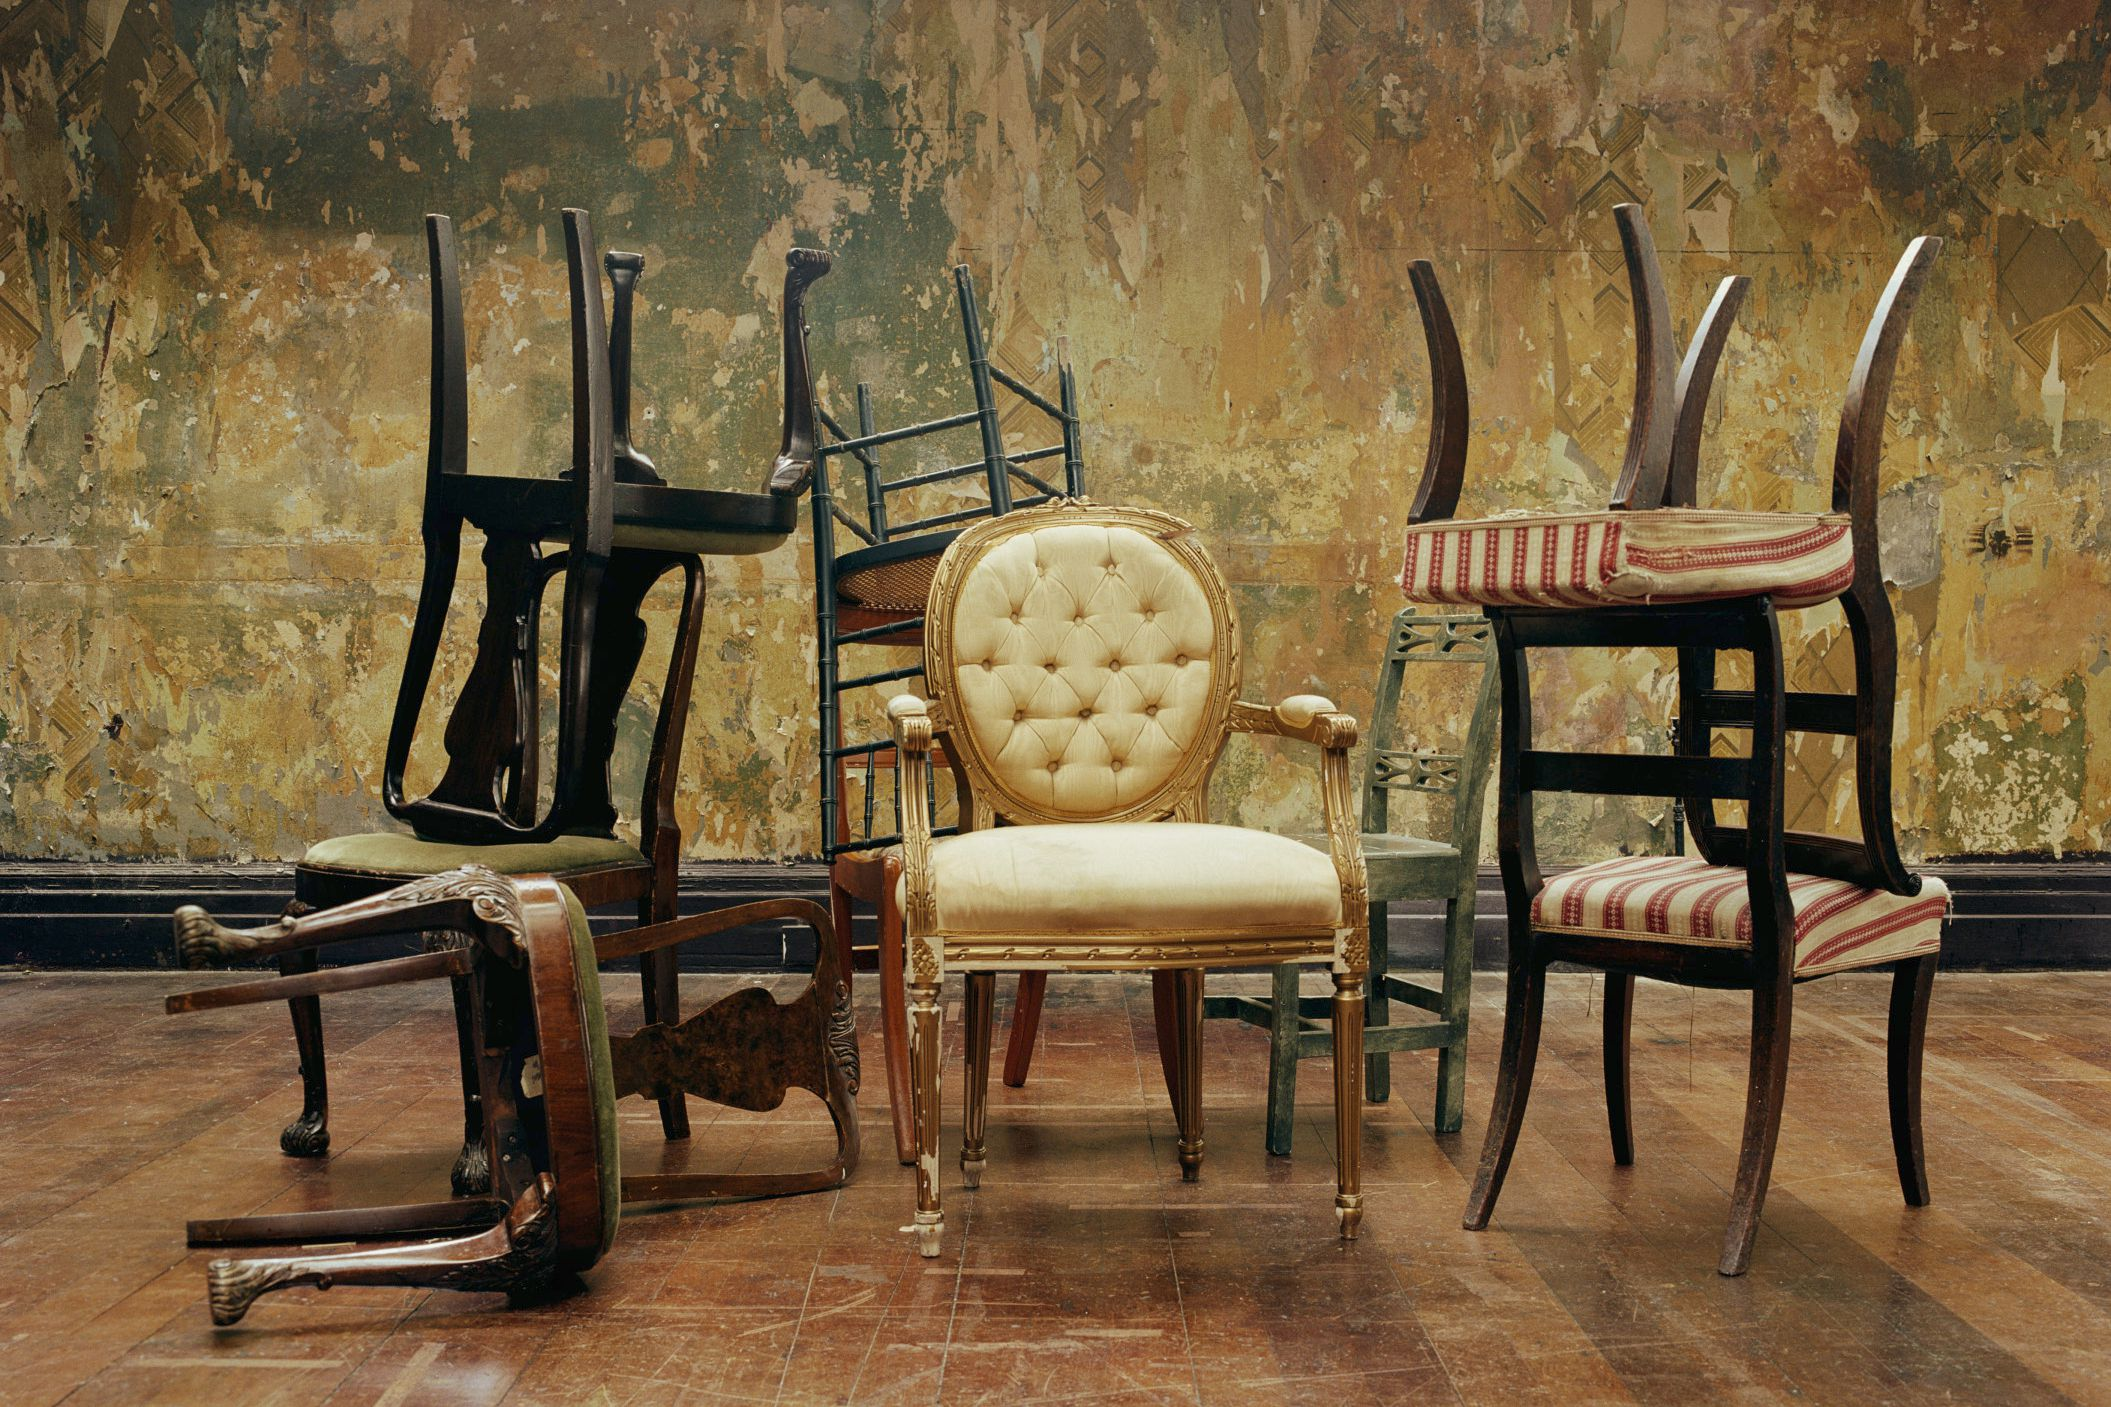 Antique slipper chair - How To Choose Chairs For Your Dining Table They Don T Have To Match